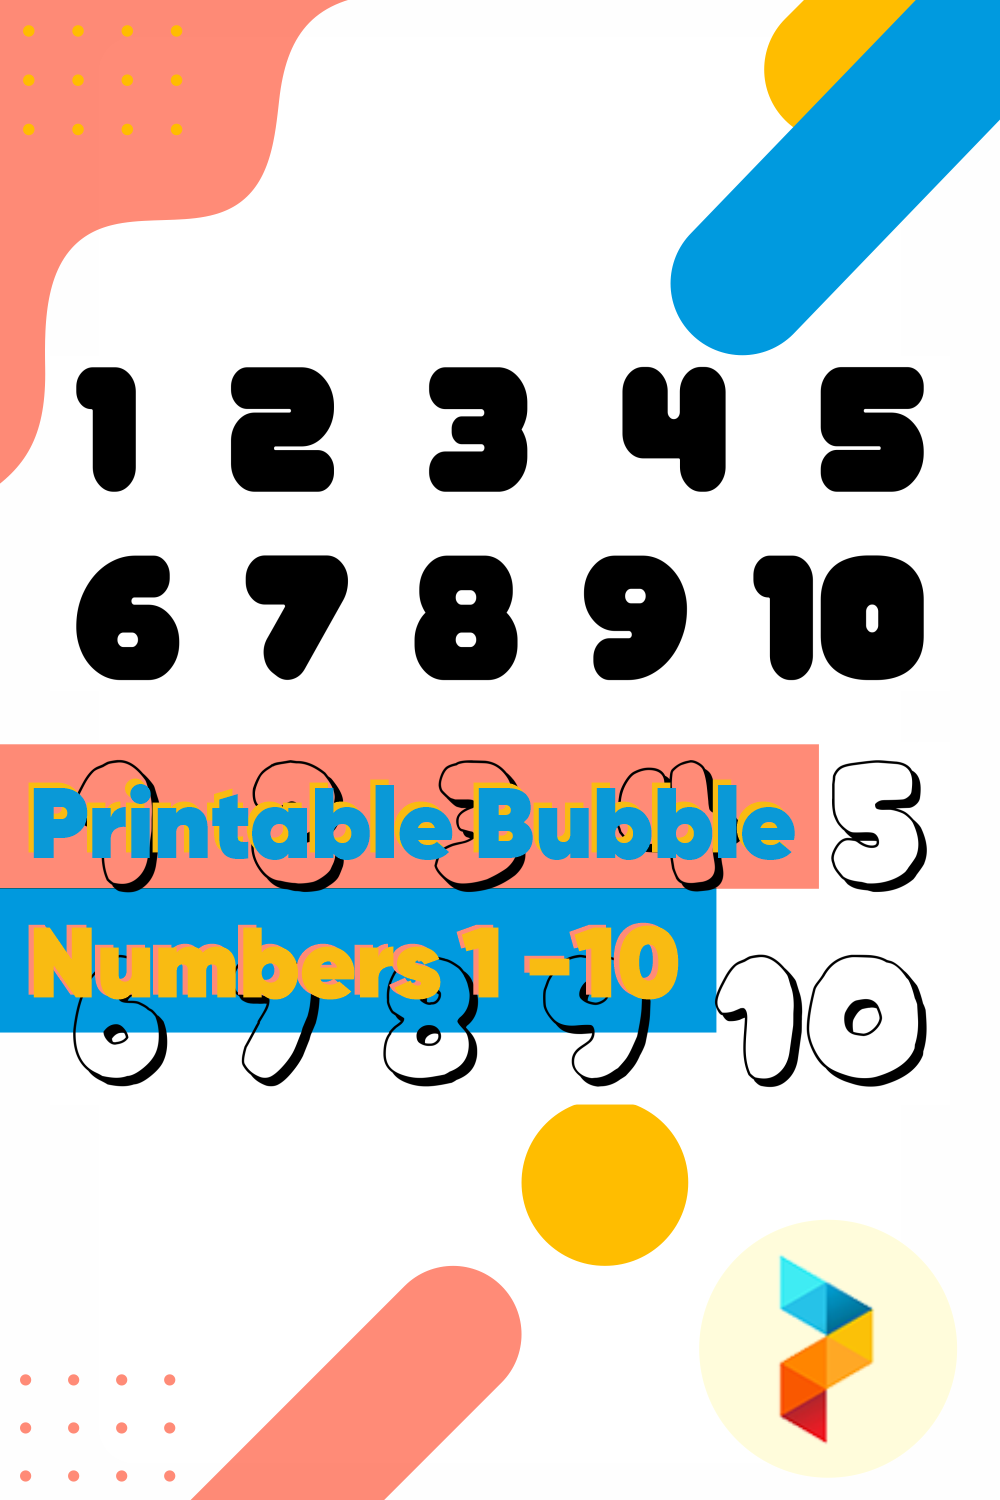 Printable Bubble Numbers 1 -10